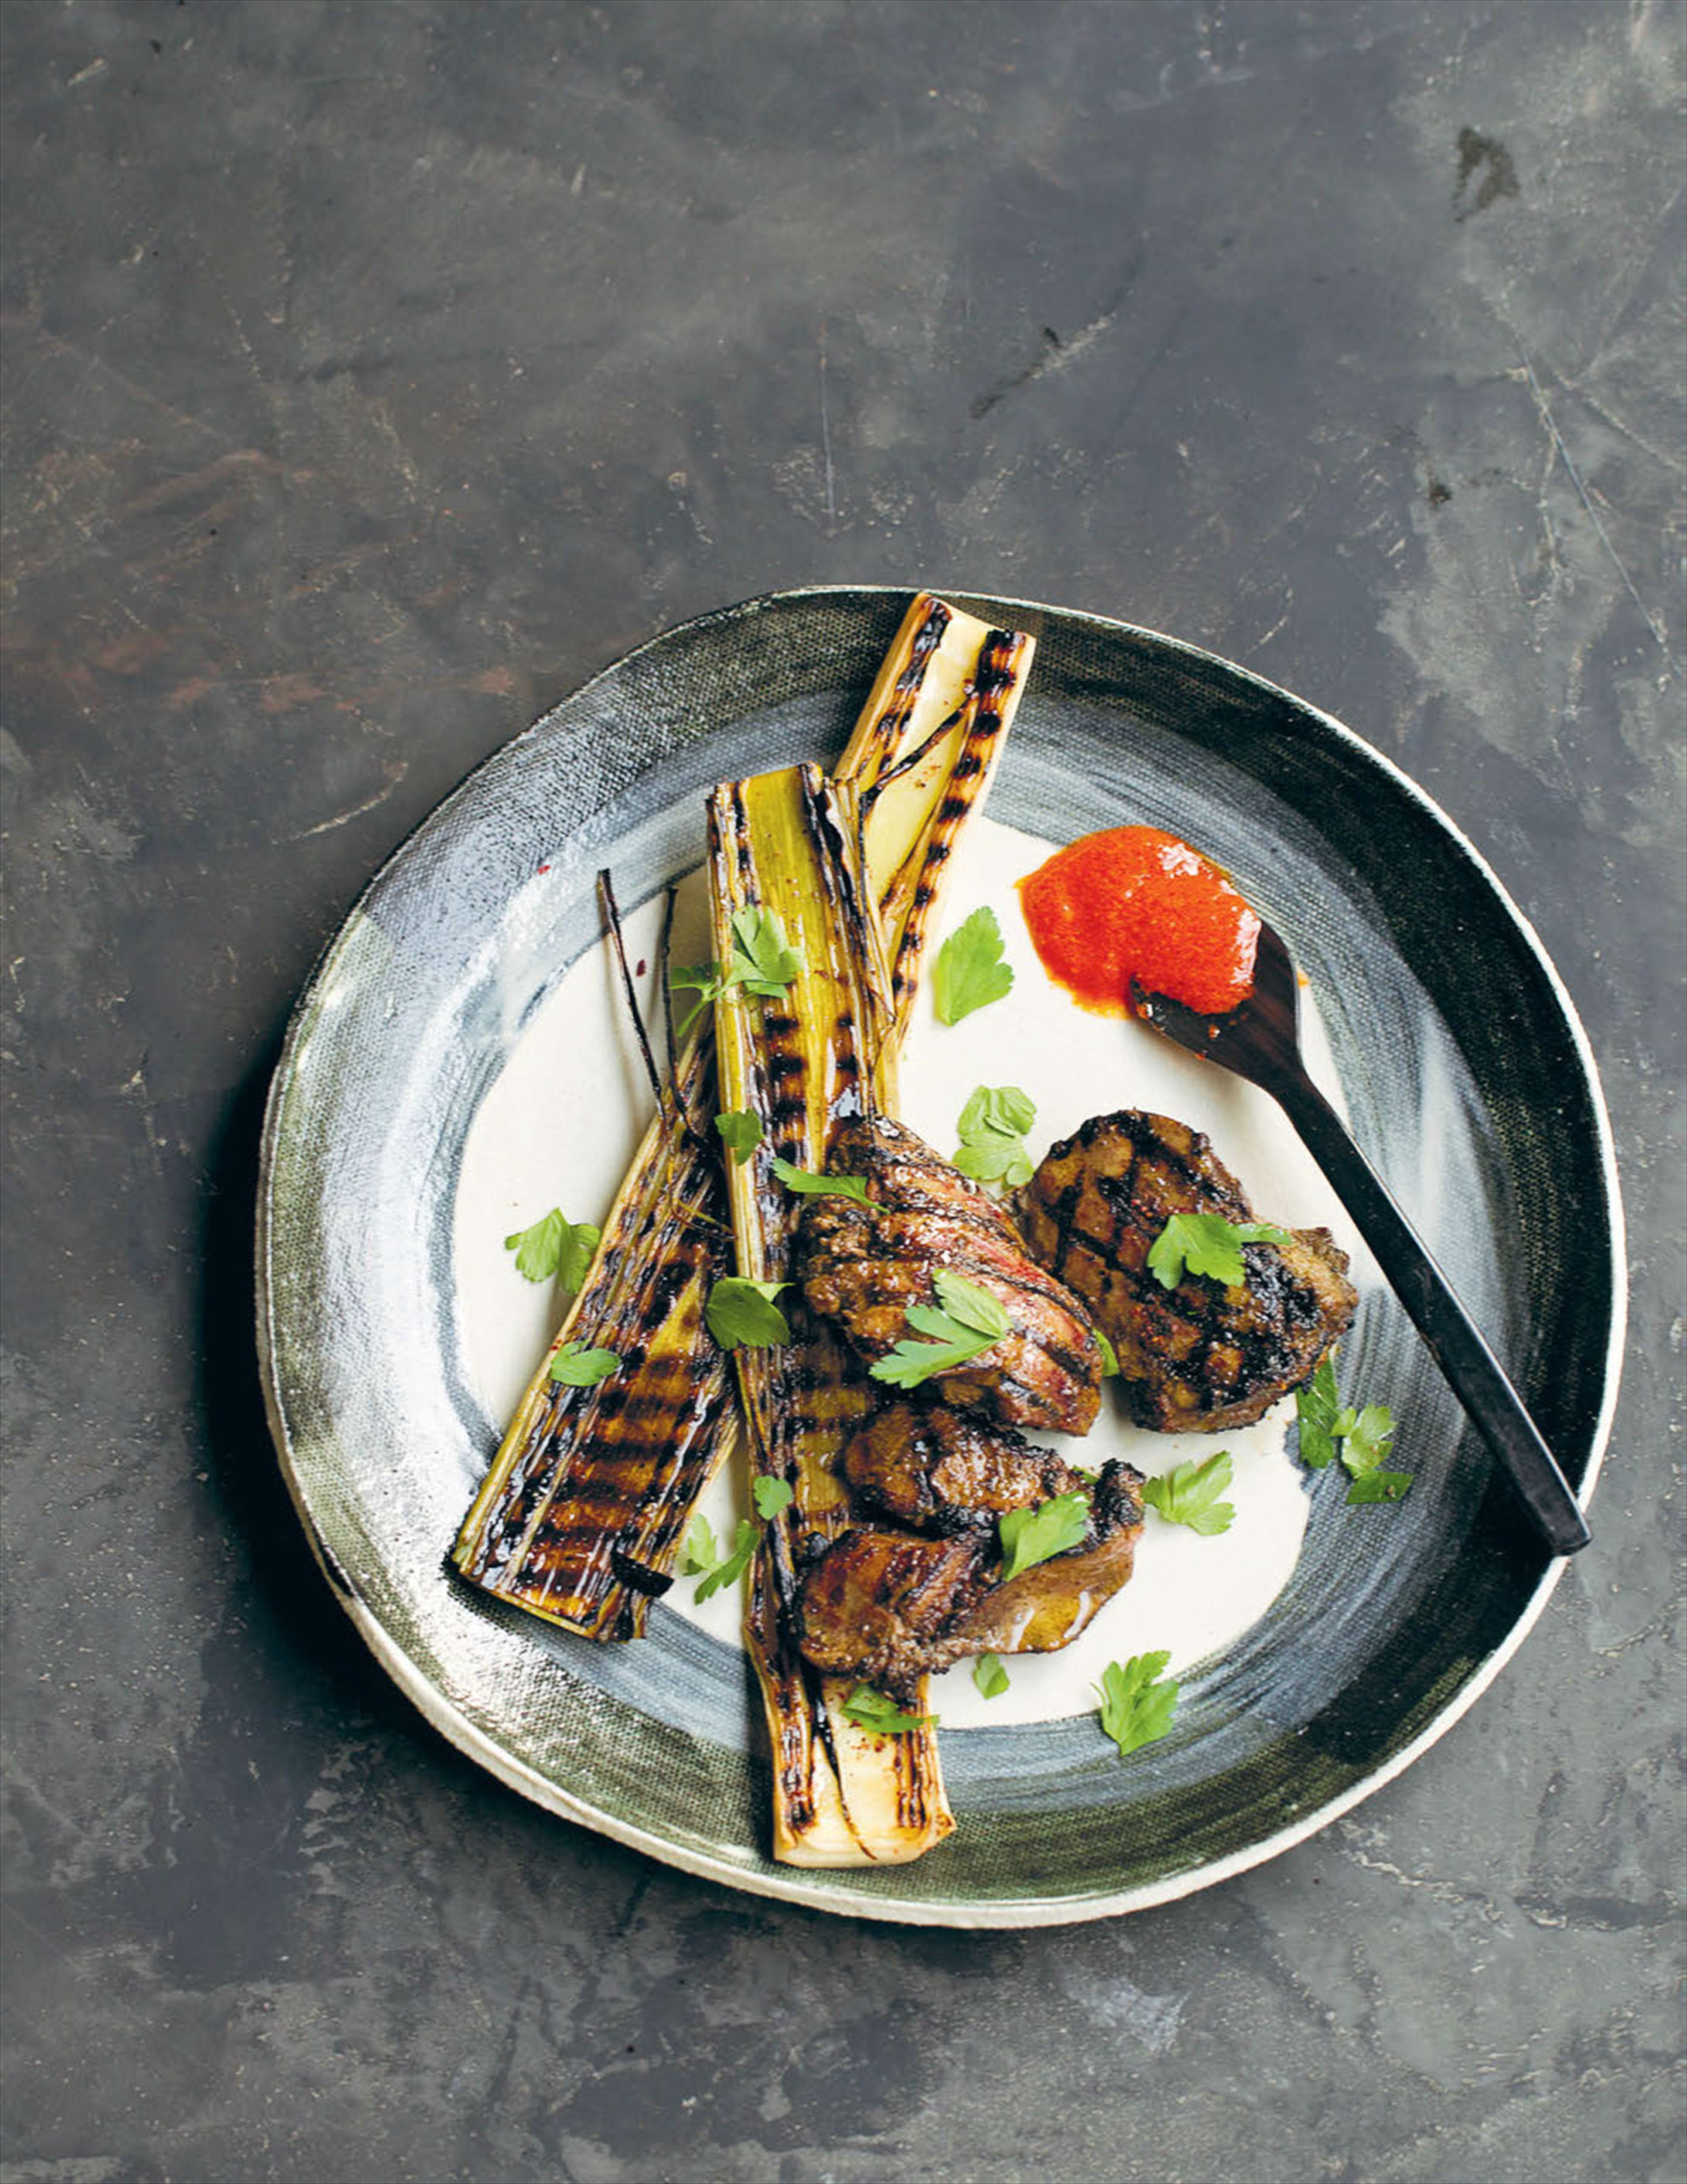 Grilled baby leeks, chicken livers and romesco sauce